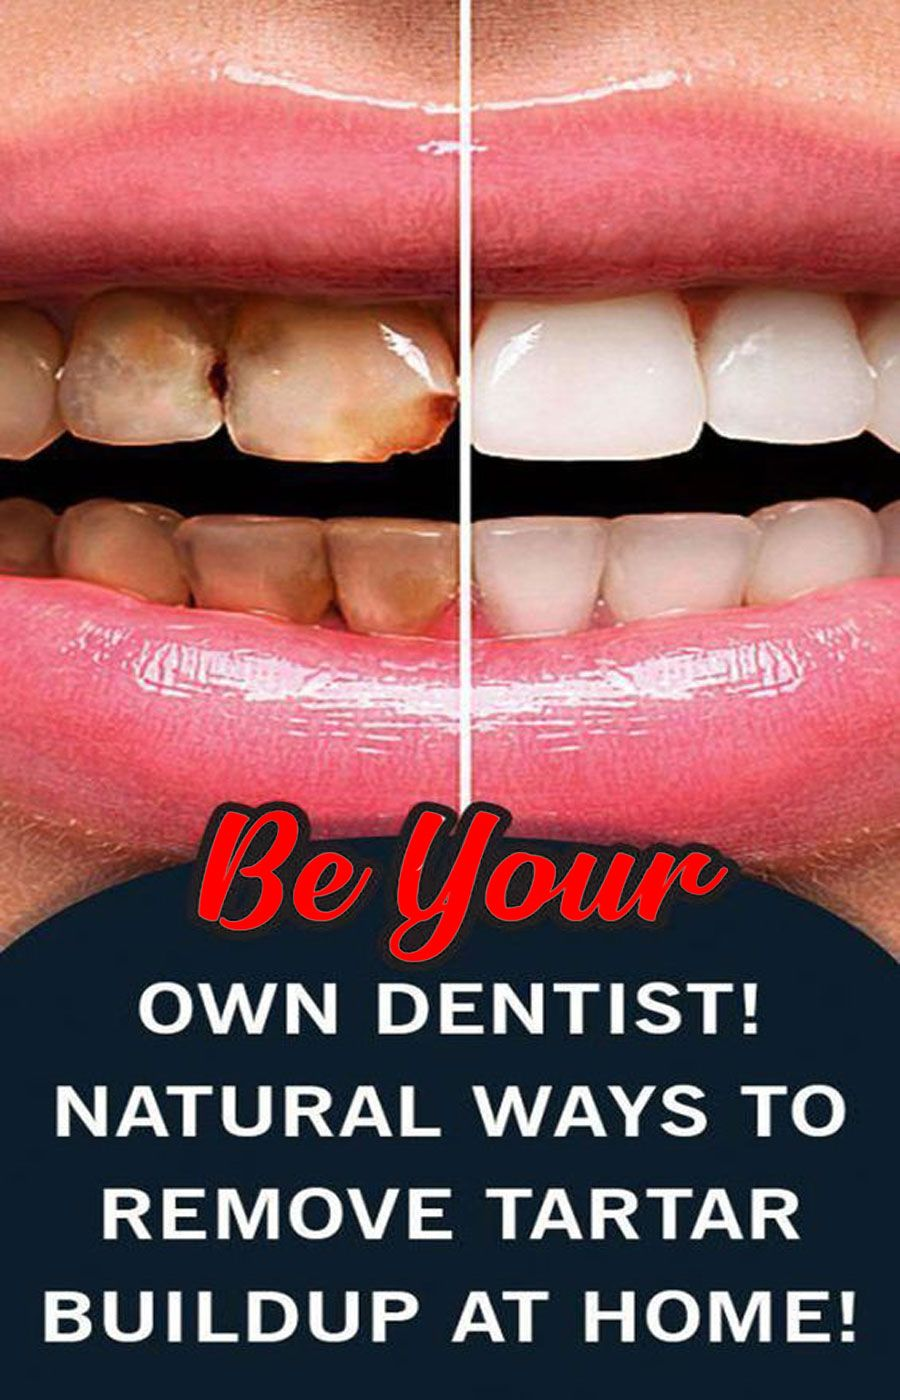 7 Simple Ways To Naturally Whiten Your Teeth At Home In 2020 Dentist Oral Health Care Oral Care